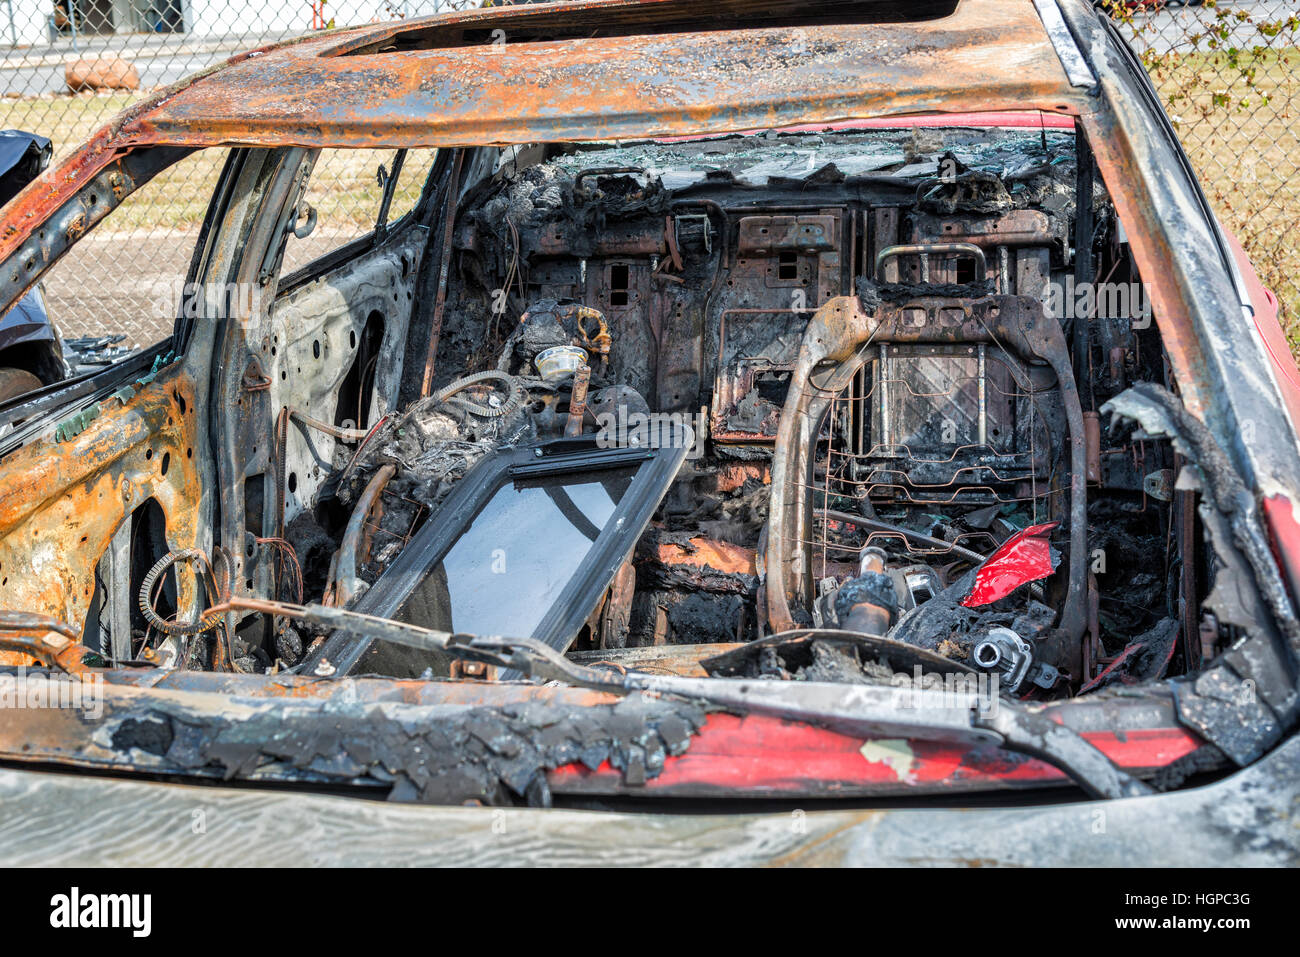 The charred interior of an automobile that was totally destroyed by a car fire.  Arson was suspected, but not proved. - Stock Image